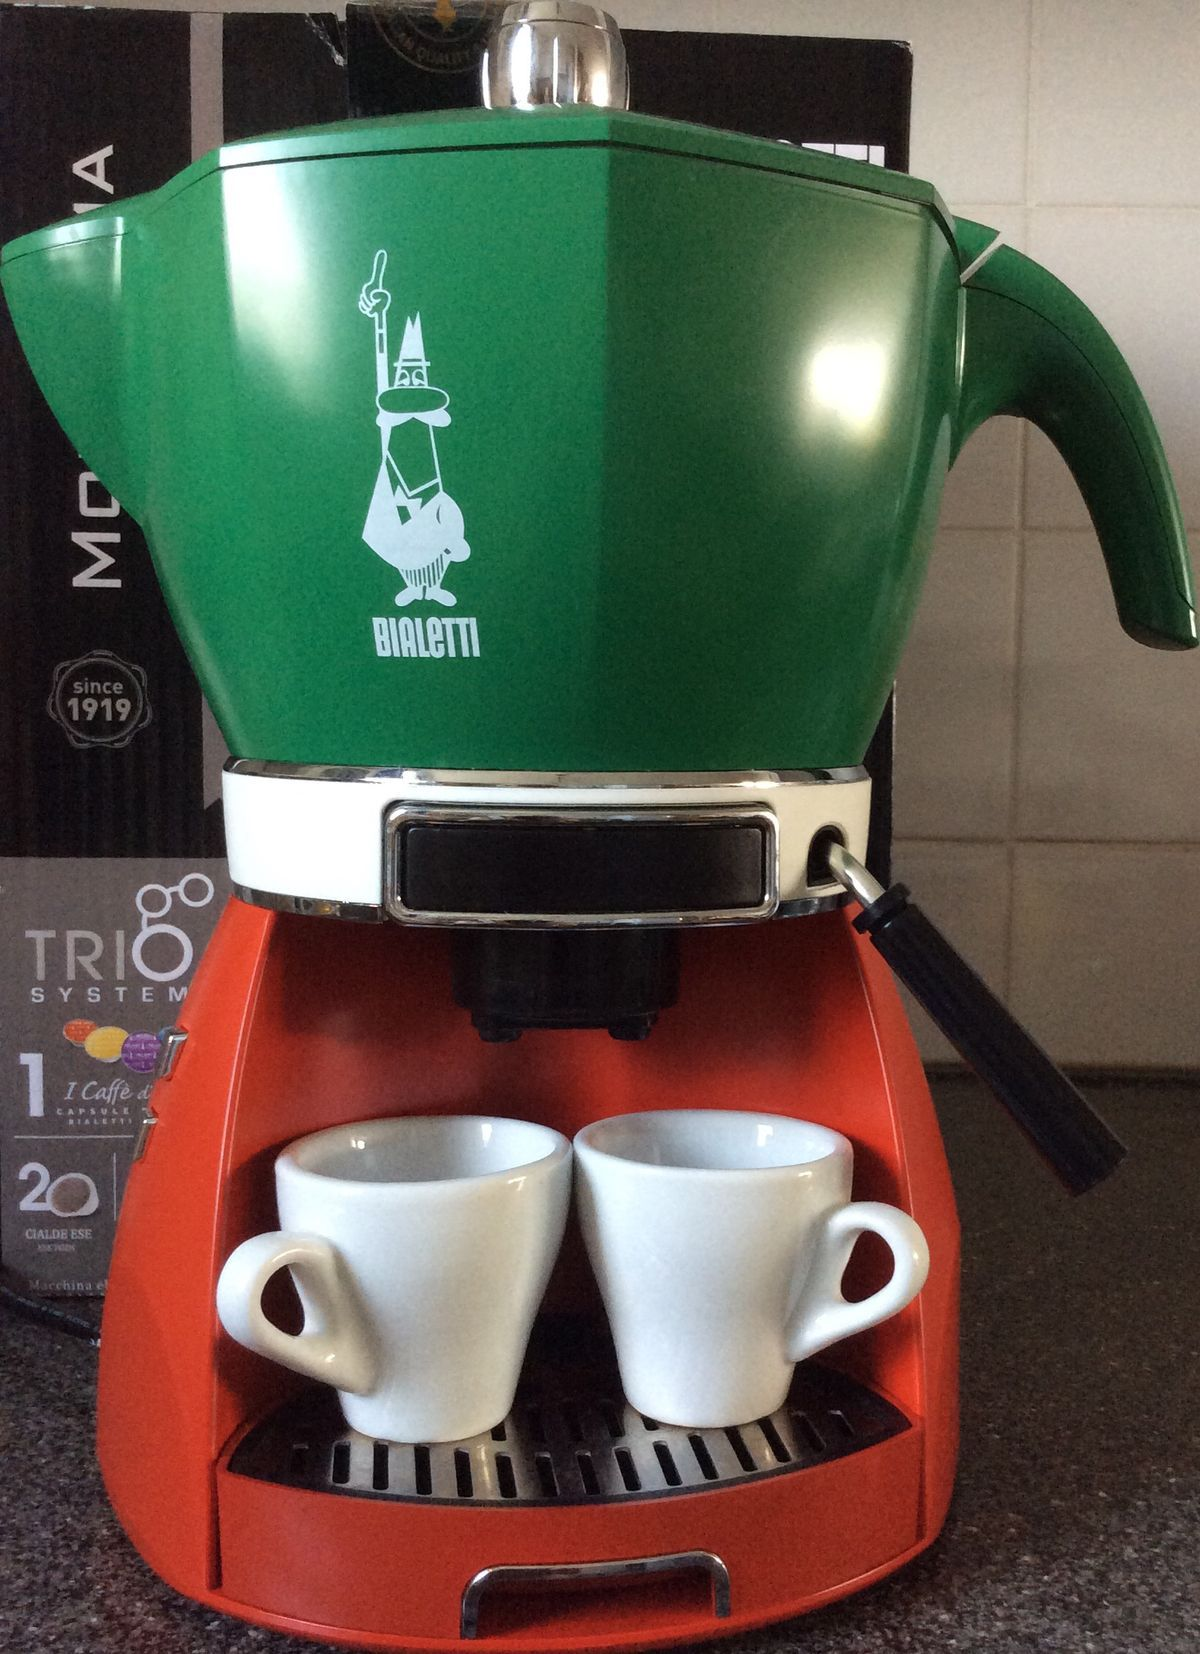 bialetti espresso maker bought in italy 2014. Black Bedroom Furniture Sets. Home Design Ideas